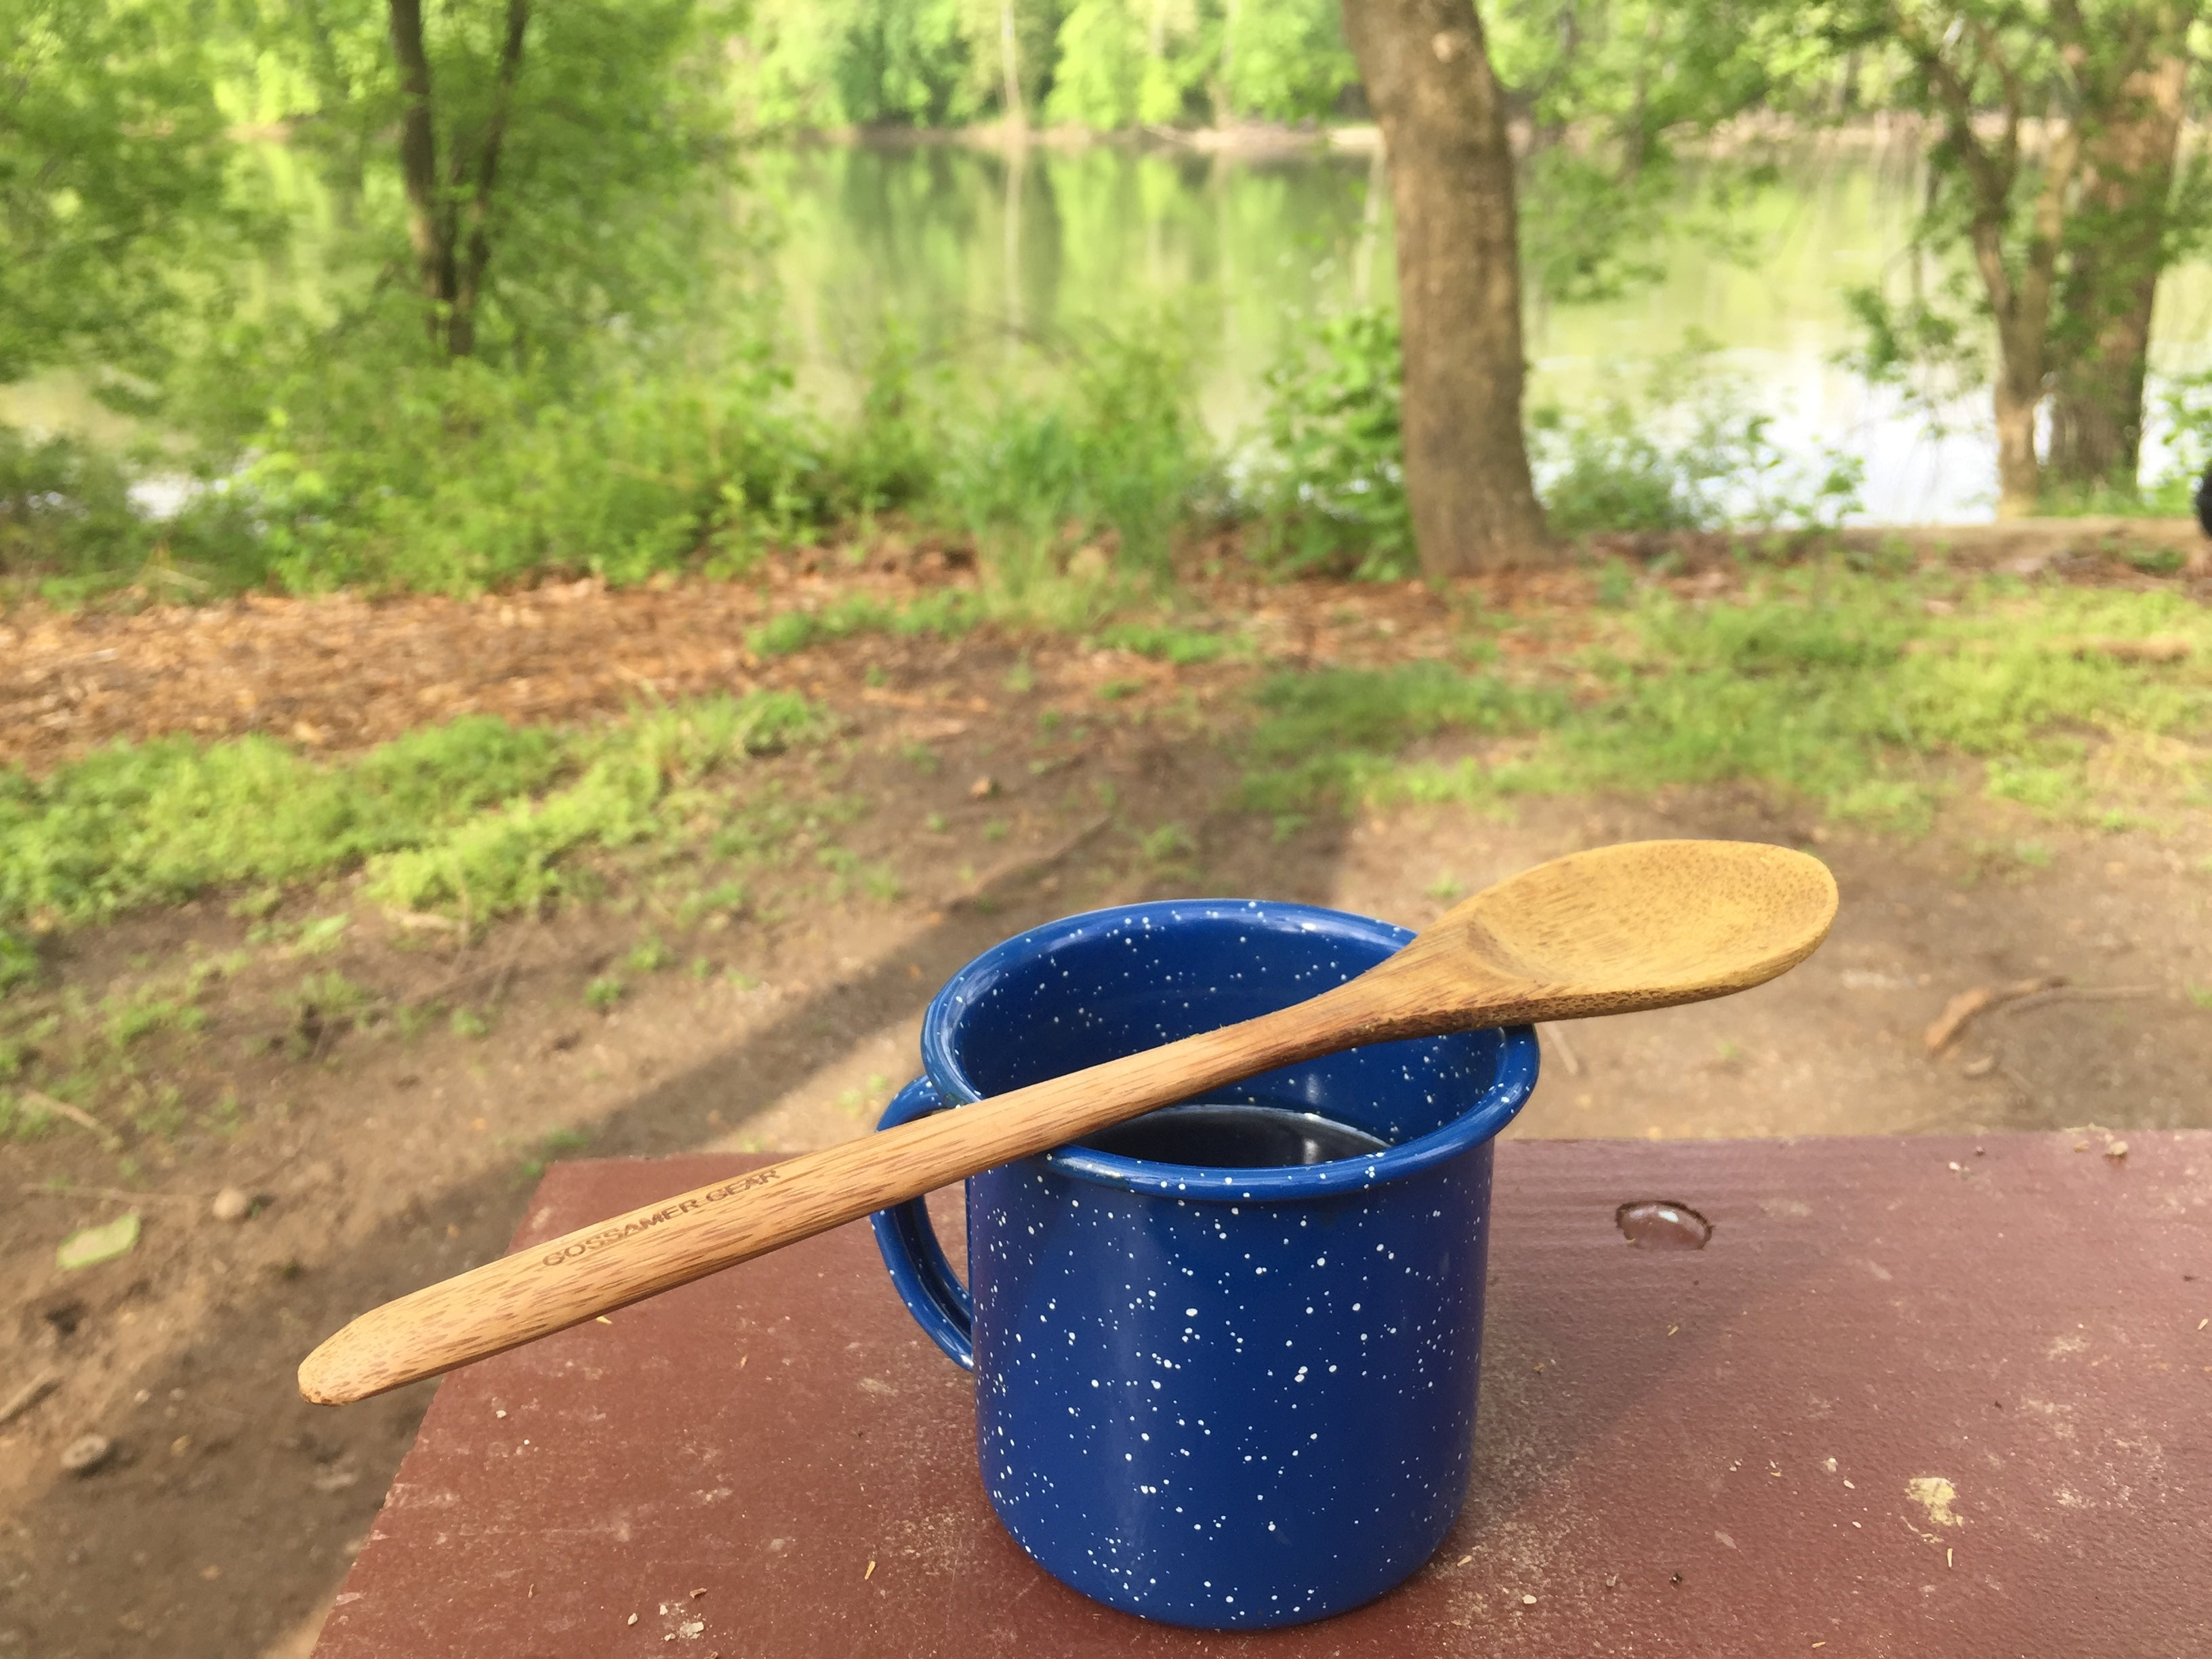 Bamboo Spoon By River